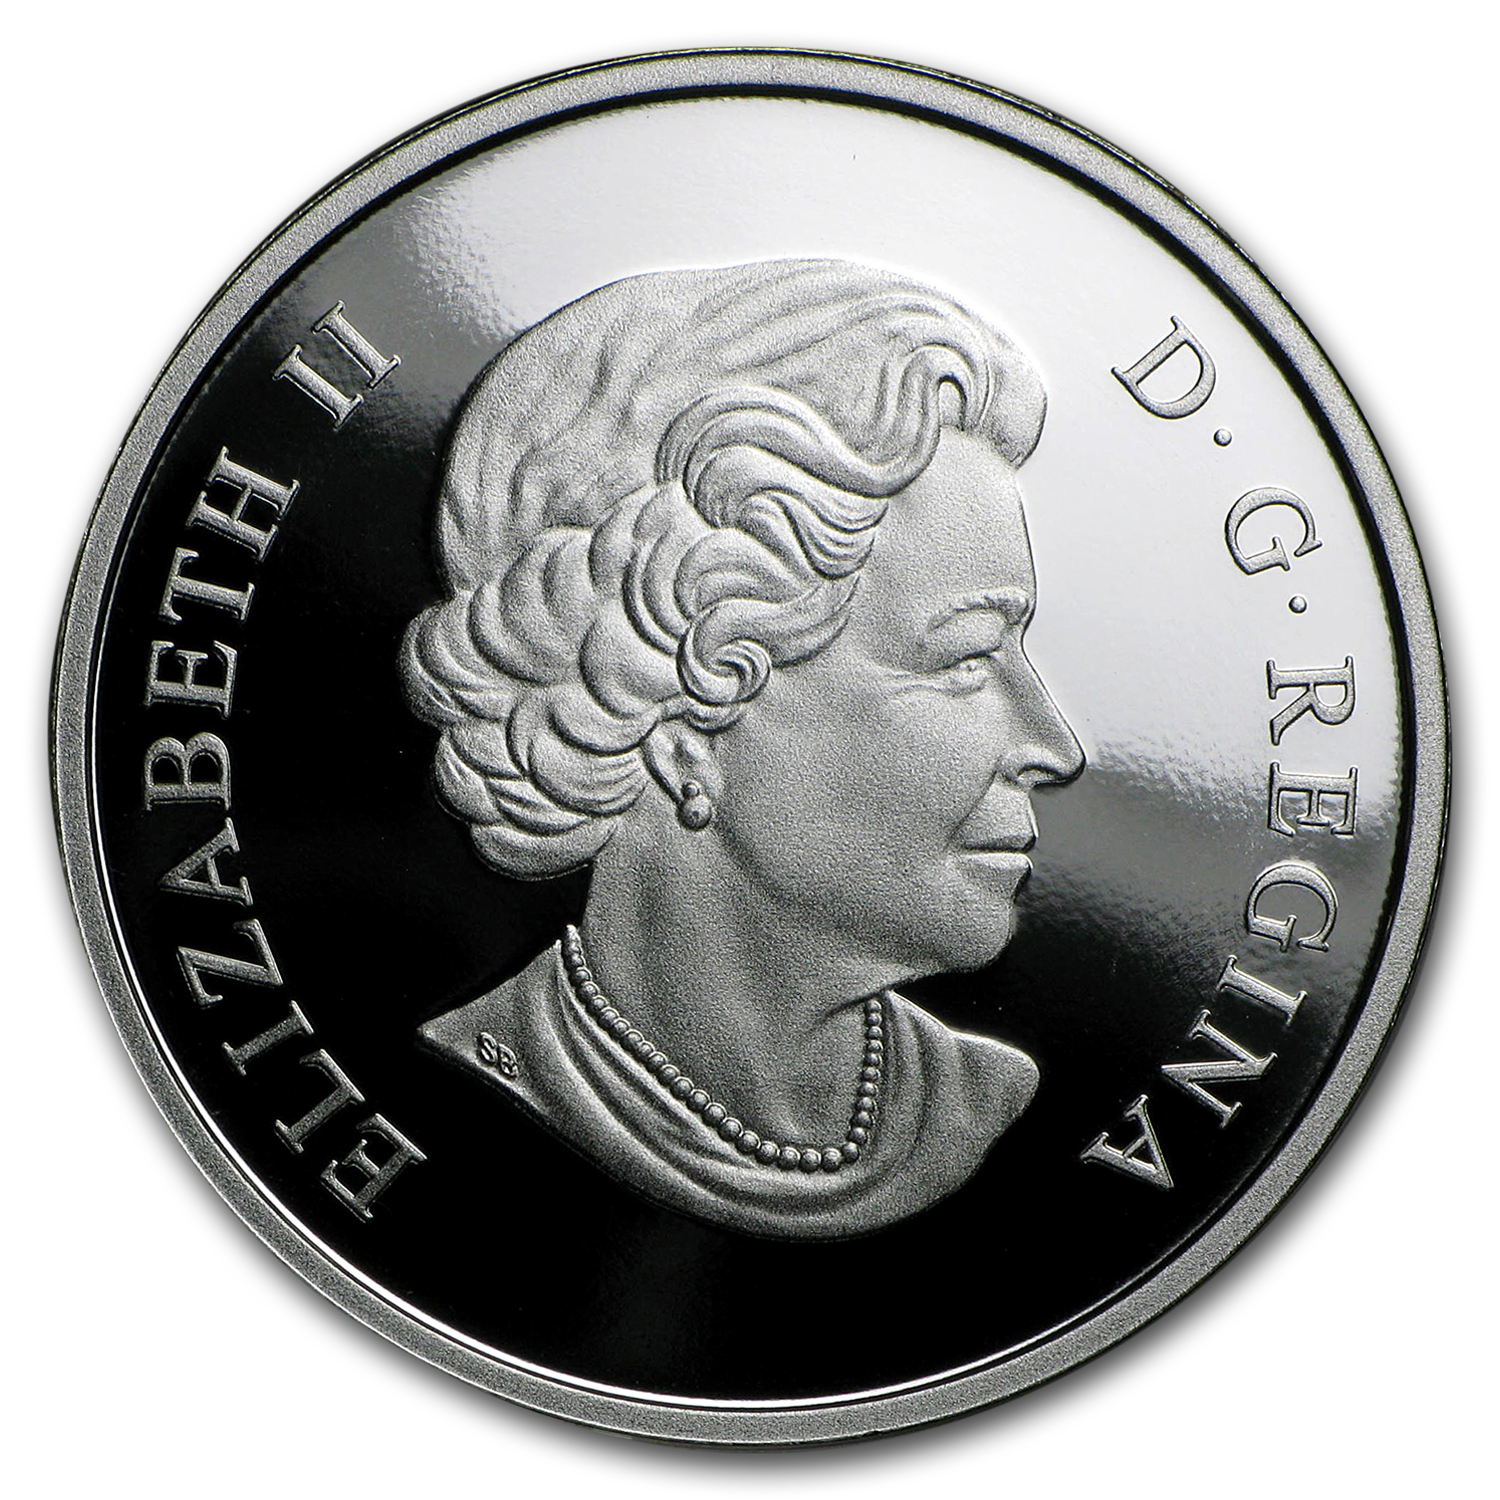 2012 1 oz Silver Canadian $20 The Queen's Diamond Jubilee (UHR)